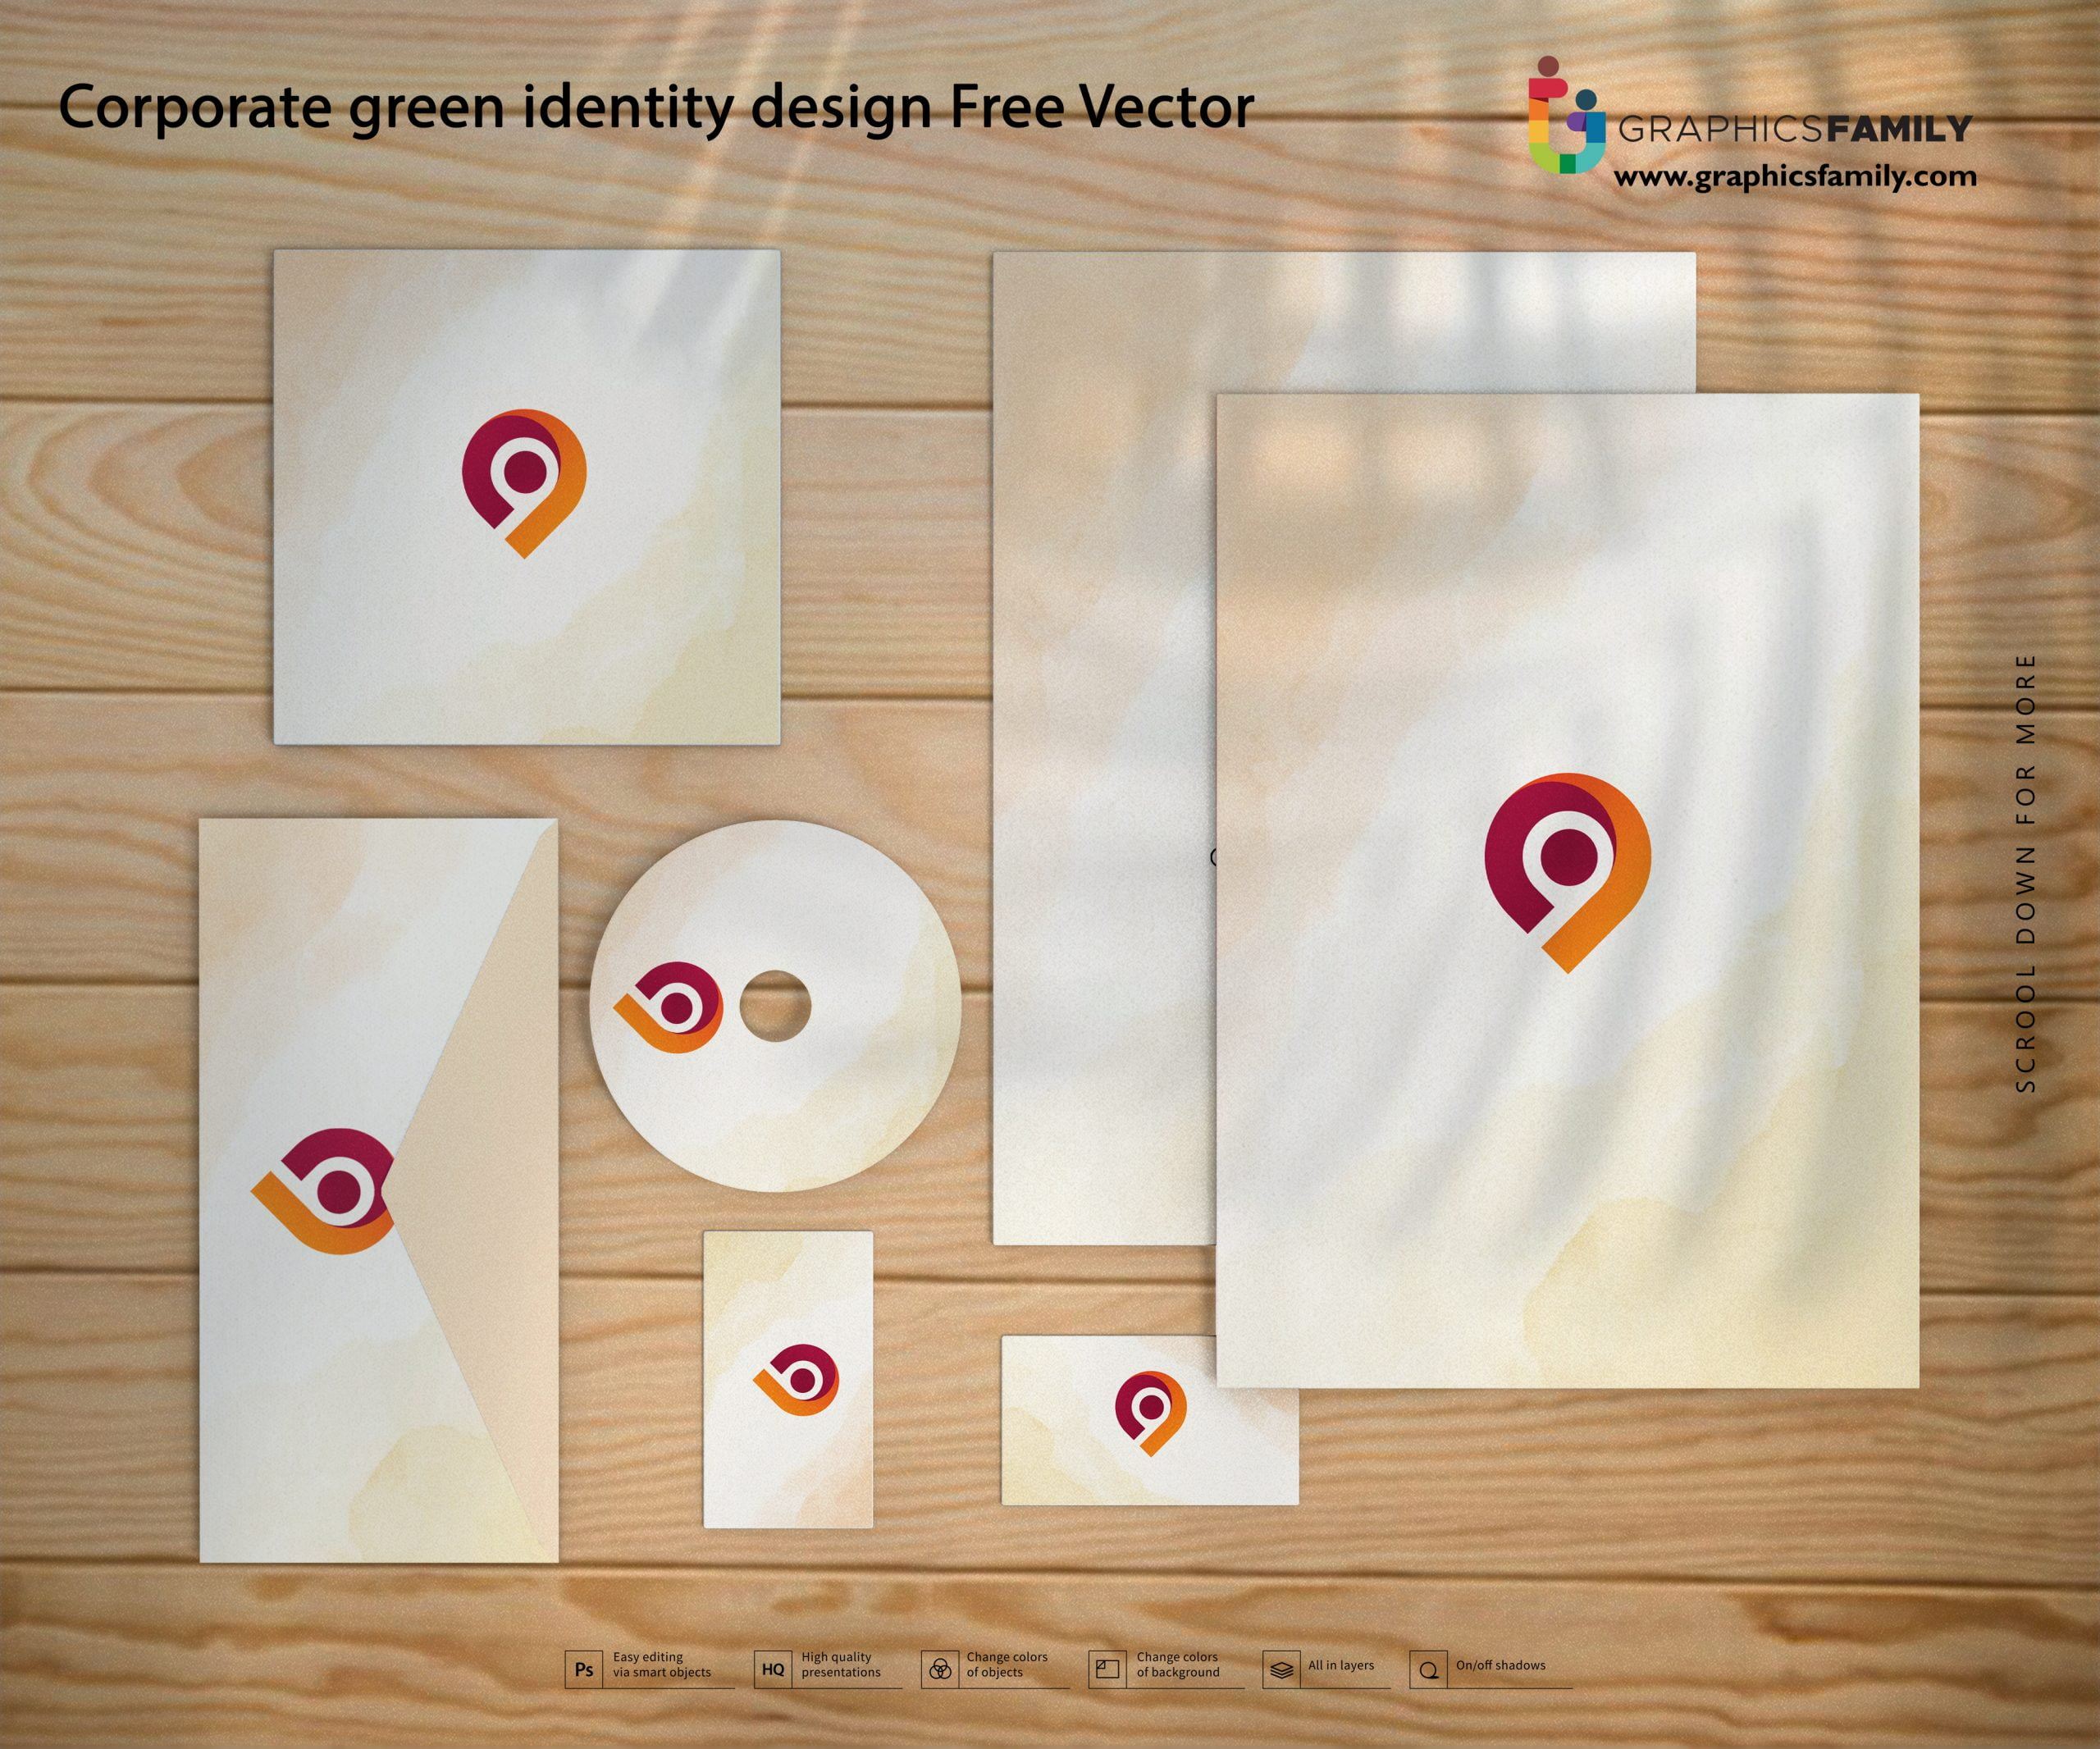 Corporate green identity design Free Vector Download